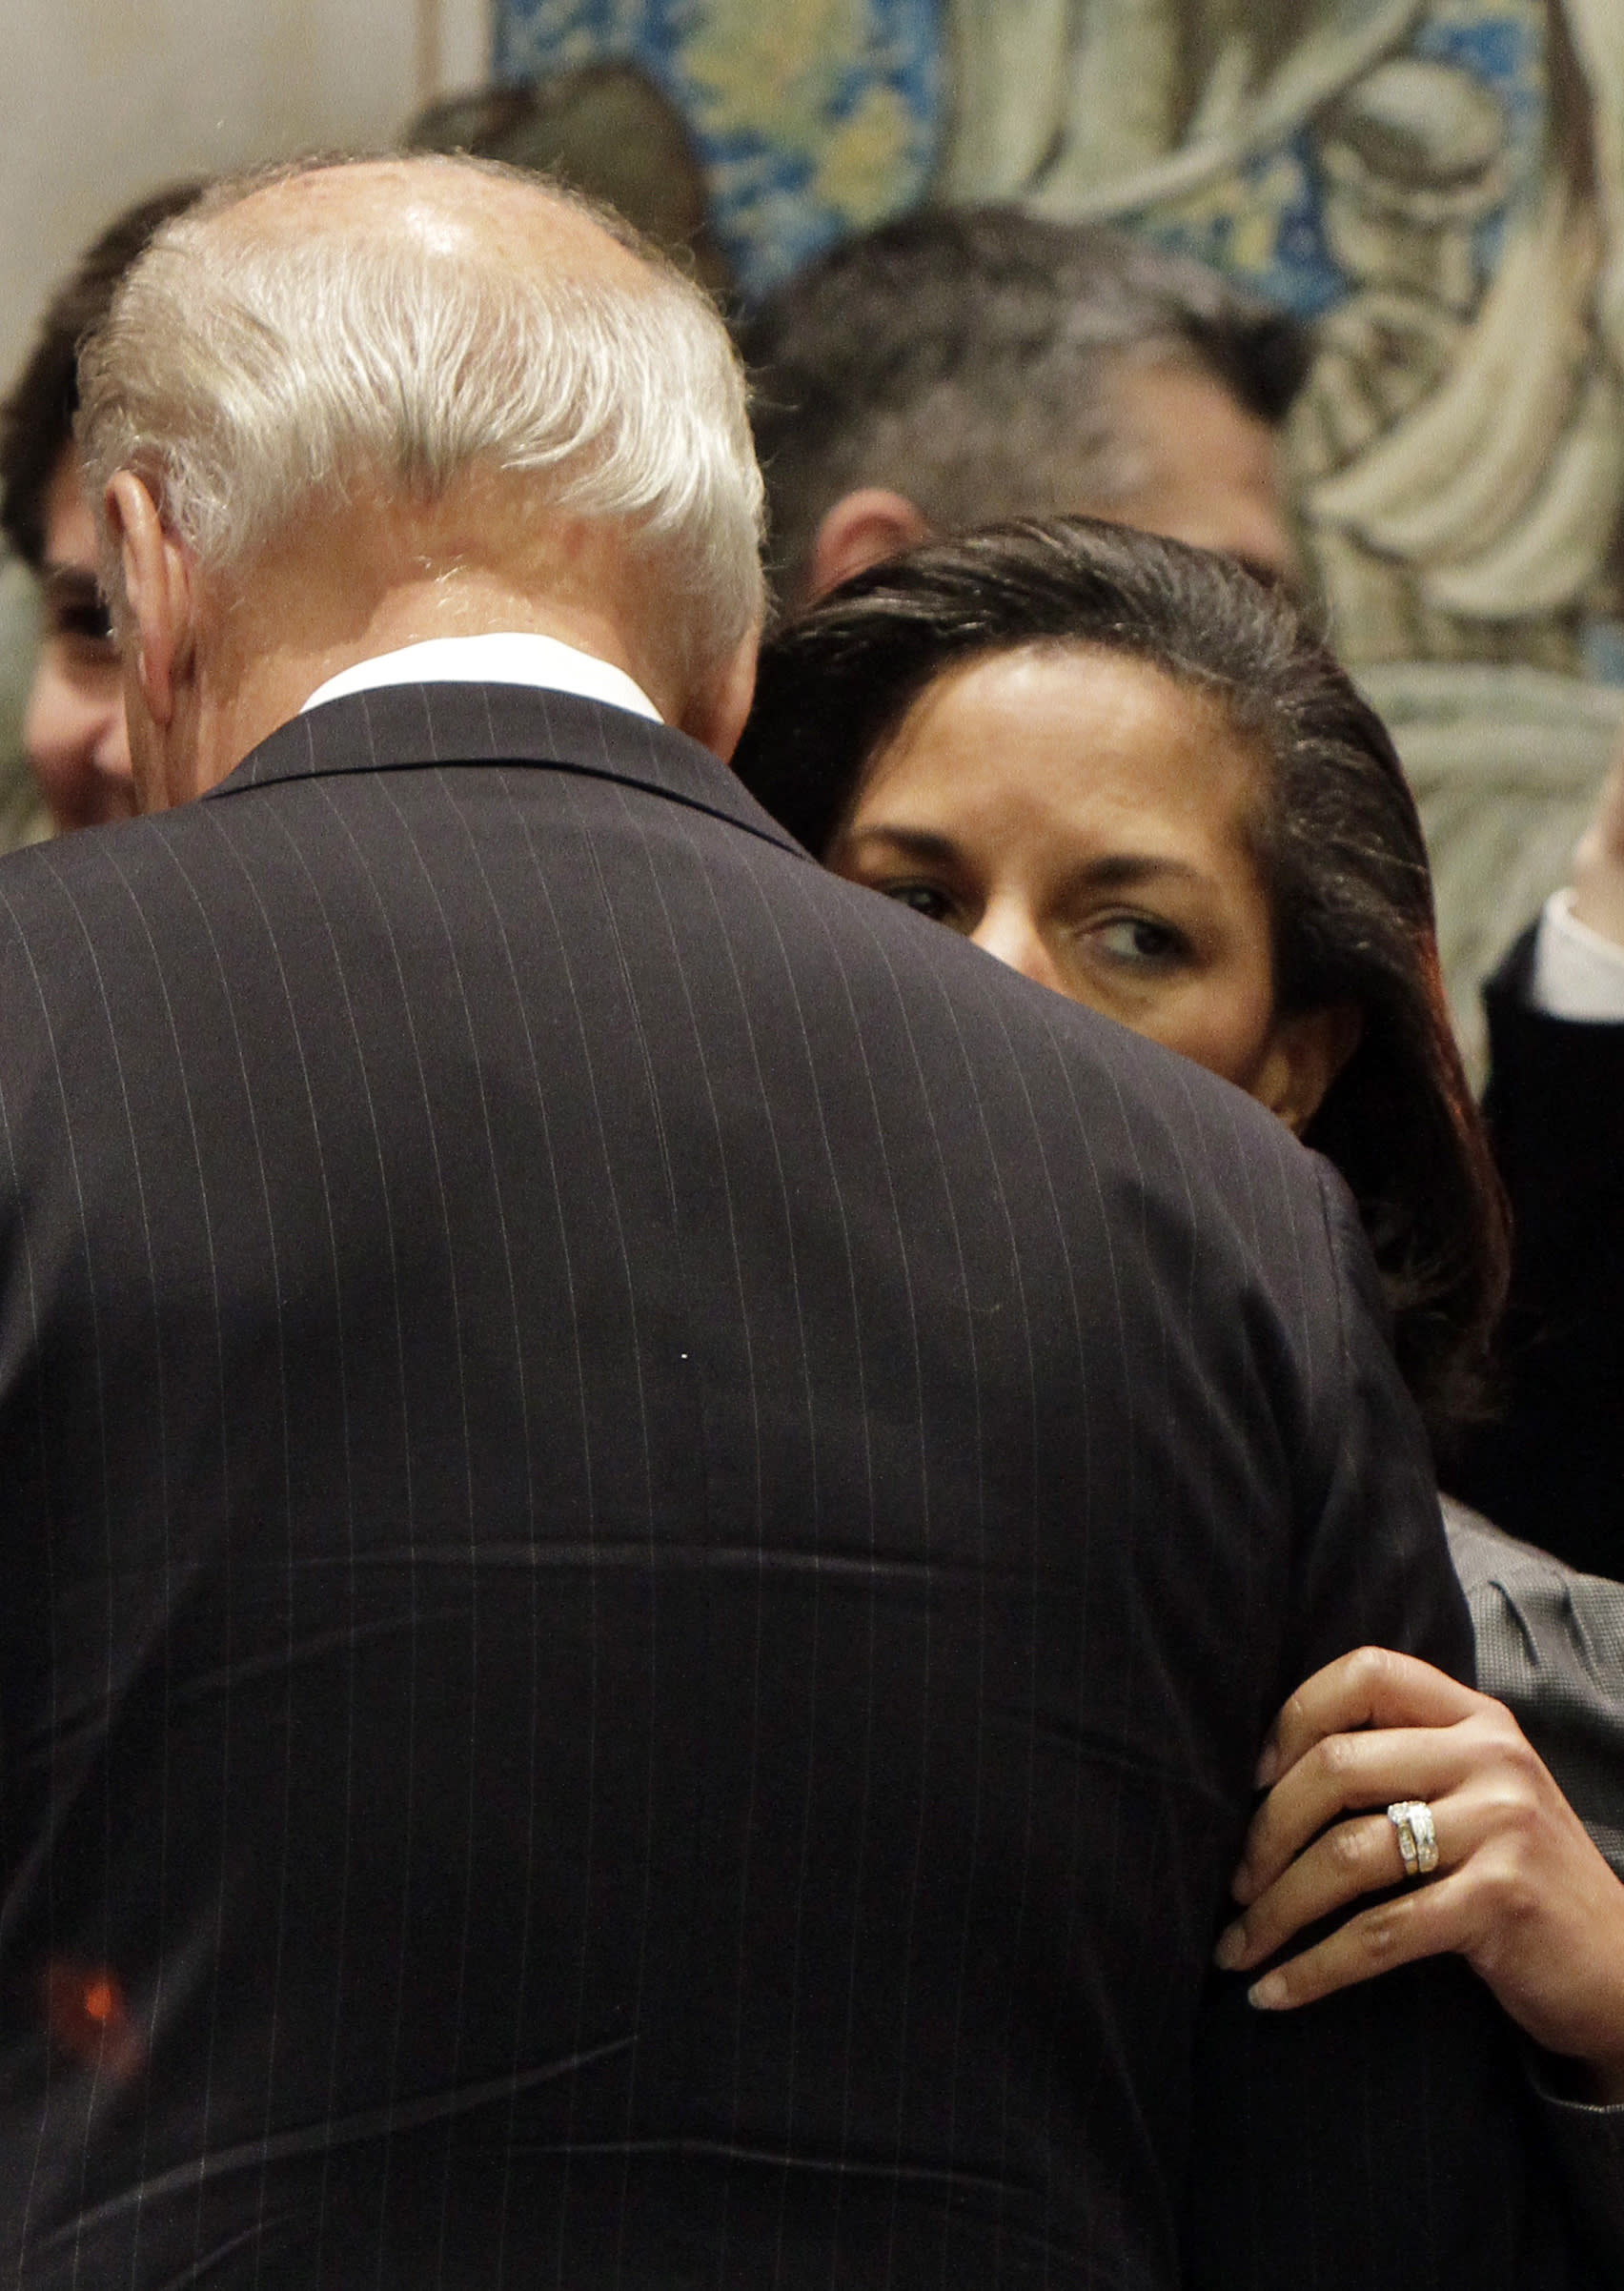 FILE - In this Dec. 15, 2010, file photo Susan Rice, the U.S. ambassador to the United Nations, whispers in the ear of Vice President Joe Biden in the United Nations Security Council, at U.N. headquarters. Democratic presidential nominee Joe Biden is in the final stages of selecting his running mate. Among the contenders is Susan Rice, who worked closely with Biden in the Obama administration and regularly briefed him on pressing foreign policy matters when she served as national security adviser. (AP Photo, File)